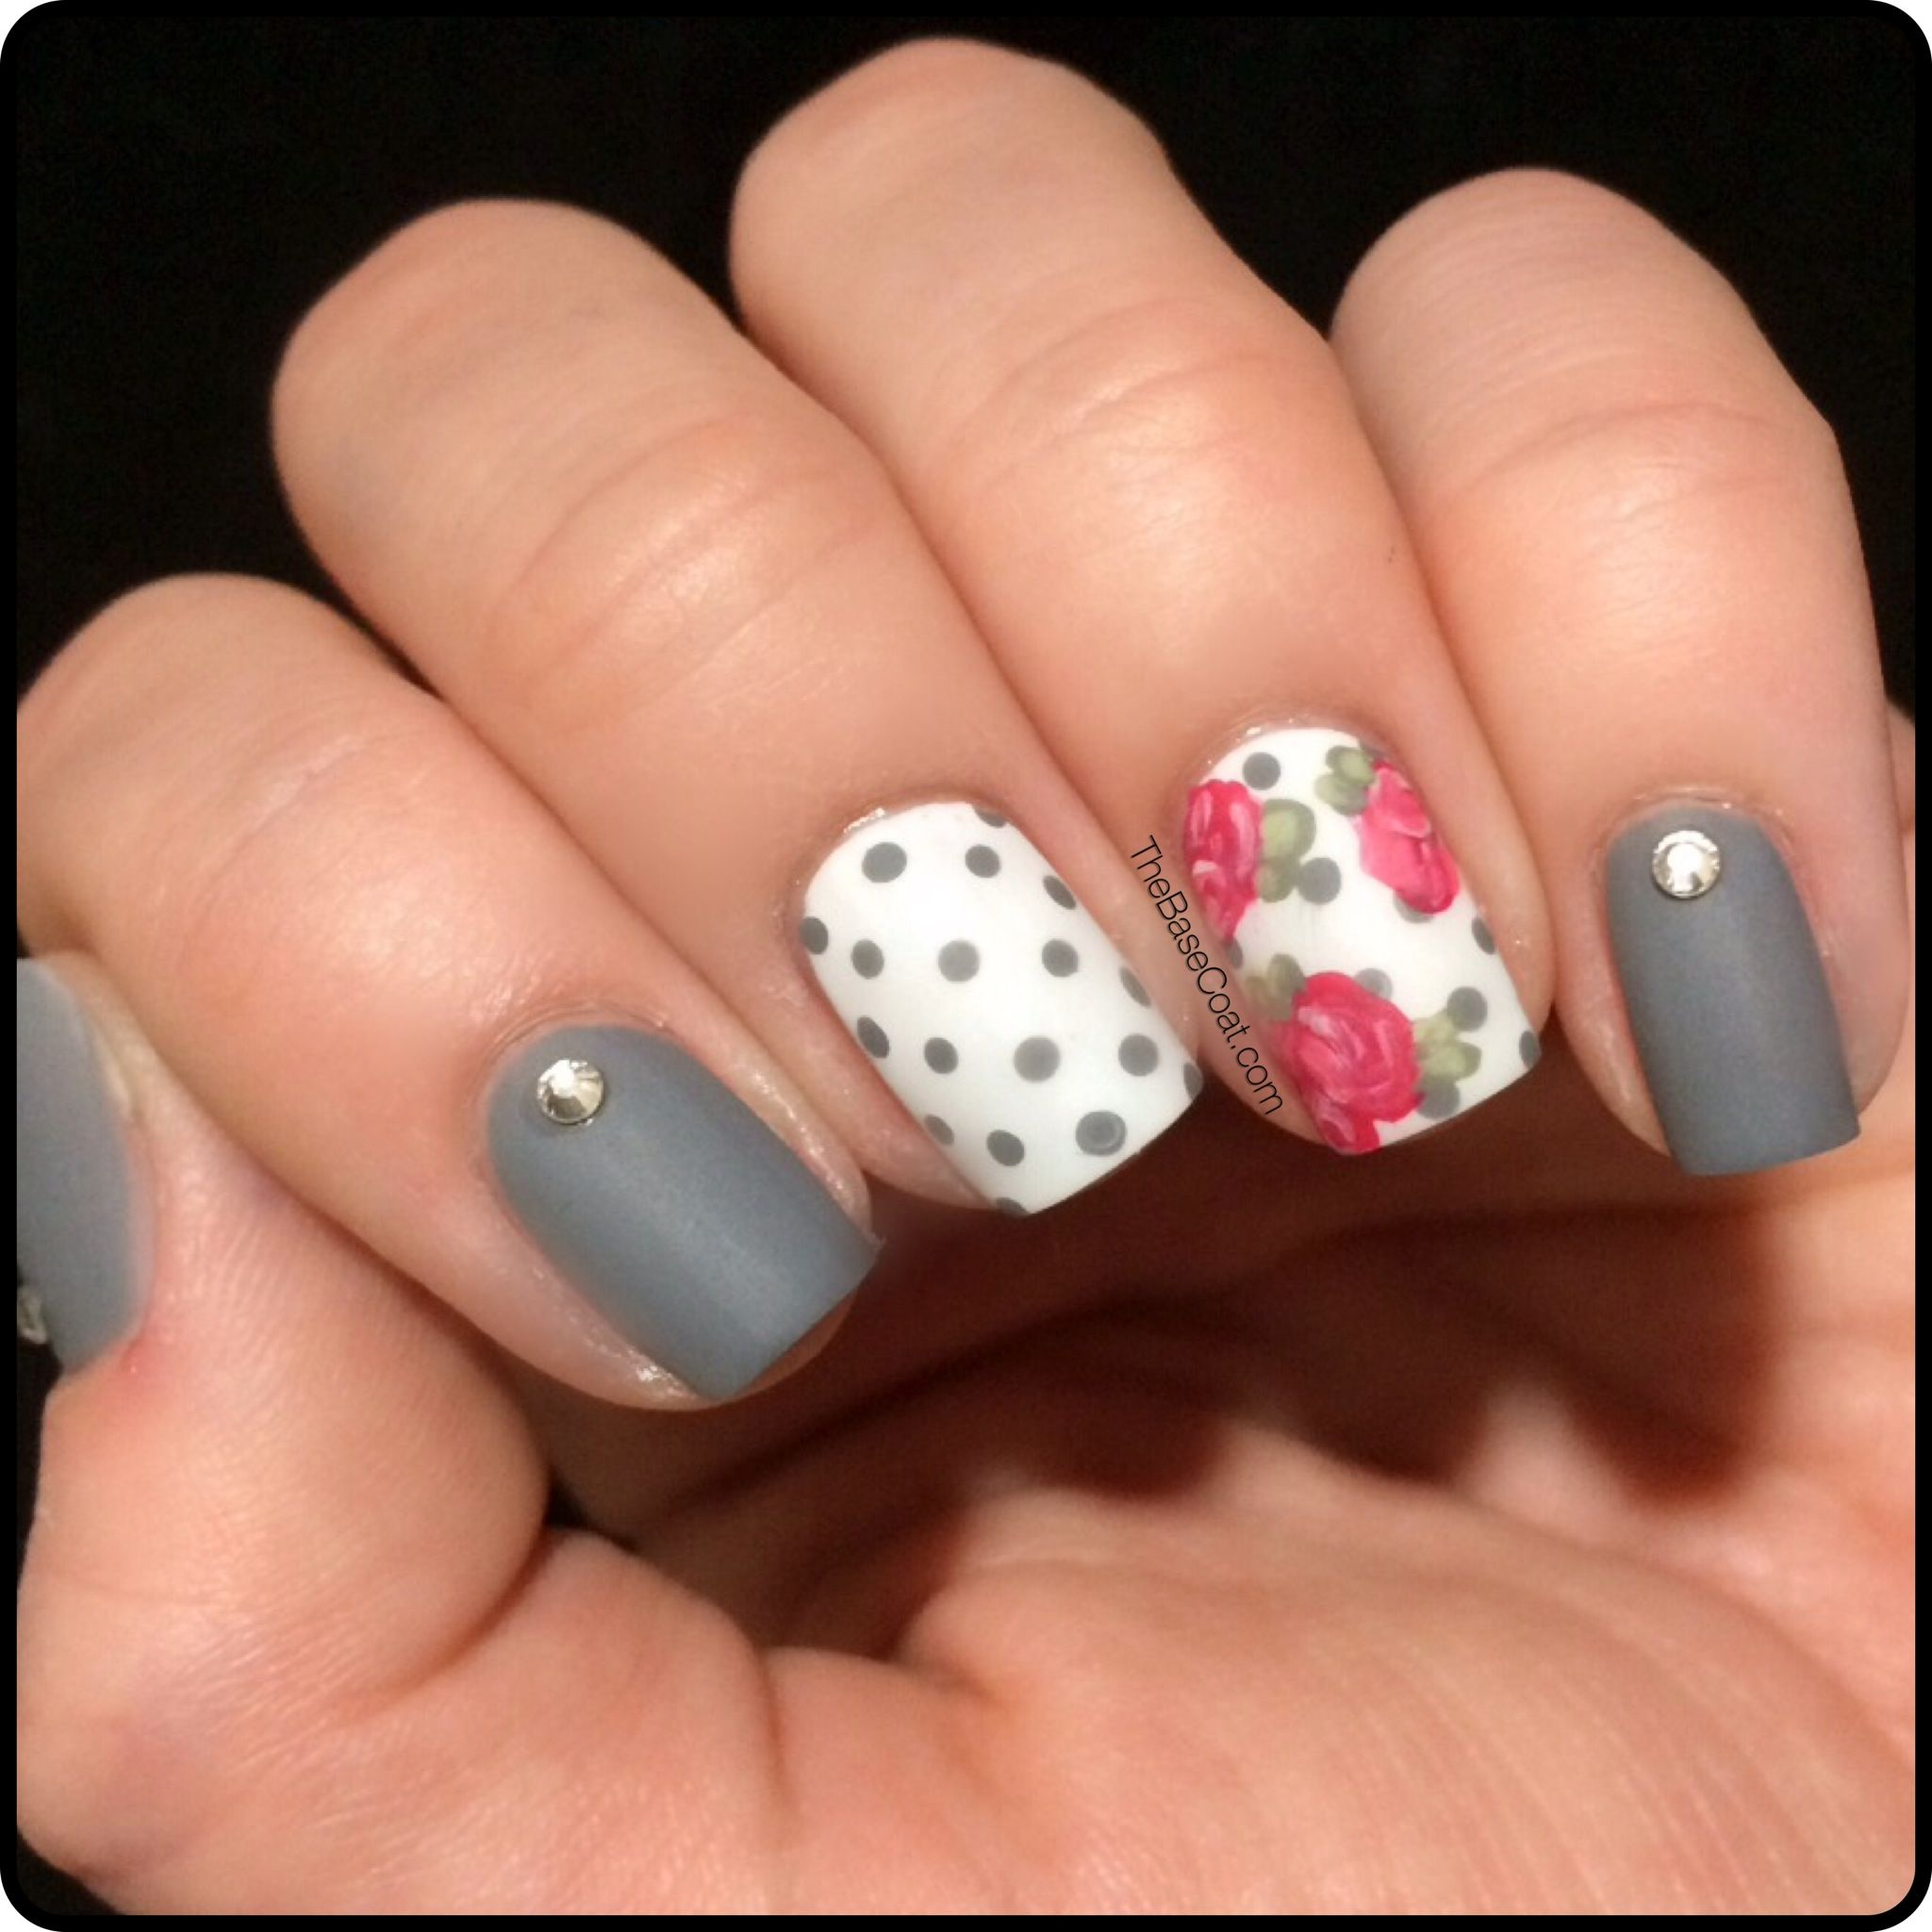 Ideas For Nails Design 25 best ideas about light pink nail designs on pinterest pretty nail art nail stuff and cute nail art Spring Nail Art Ideas To Spruce Up Your Paws Shabby Chic Spring Nail Art Ideas